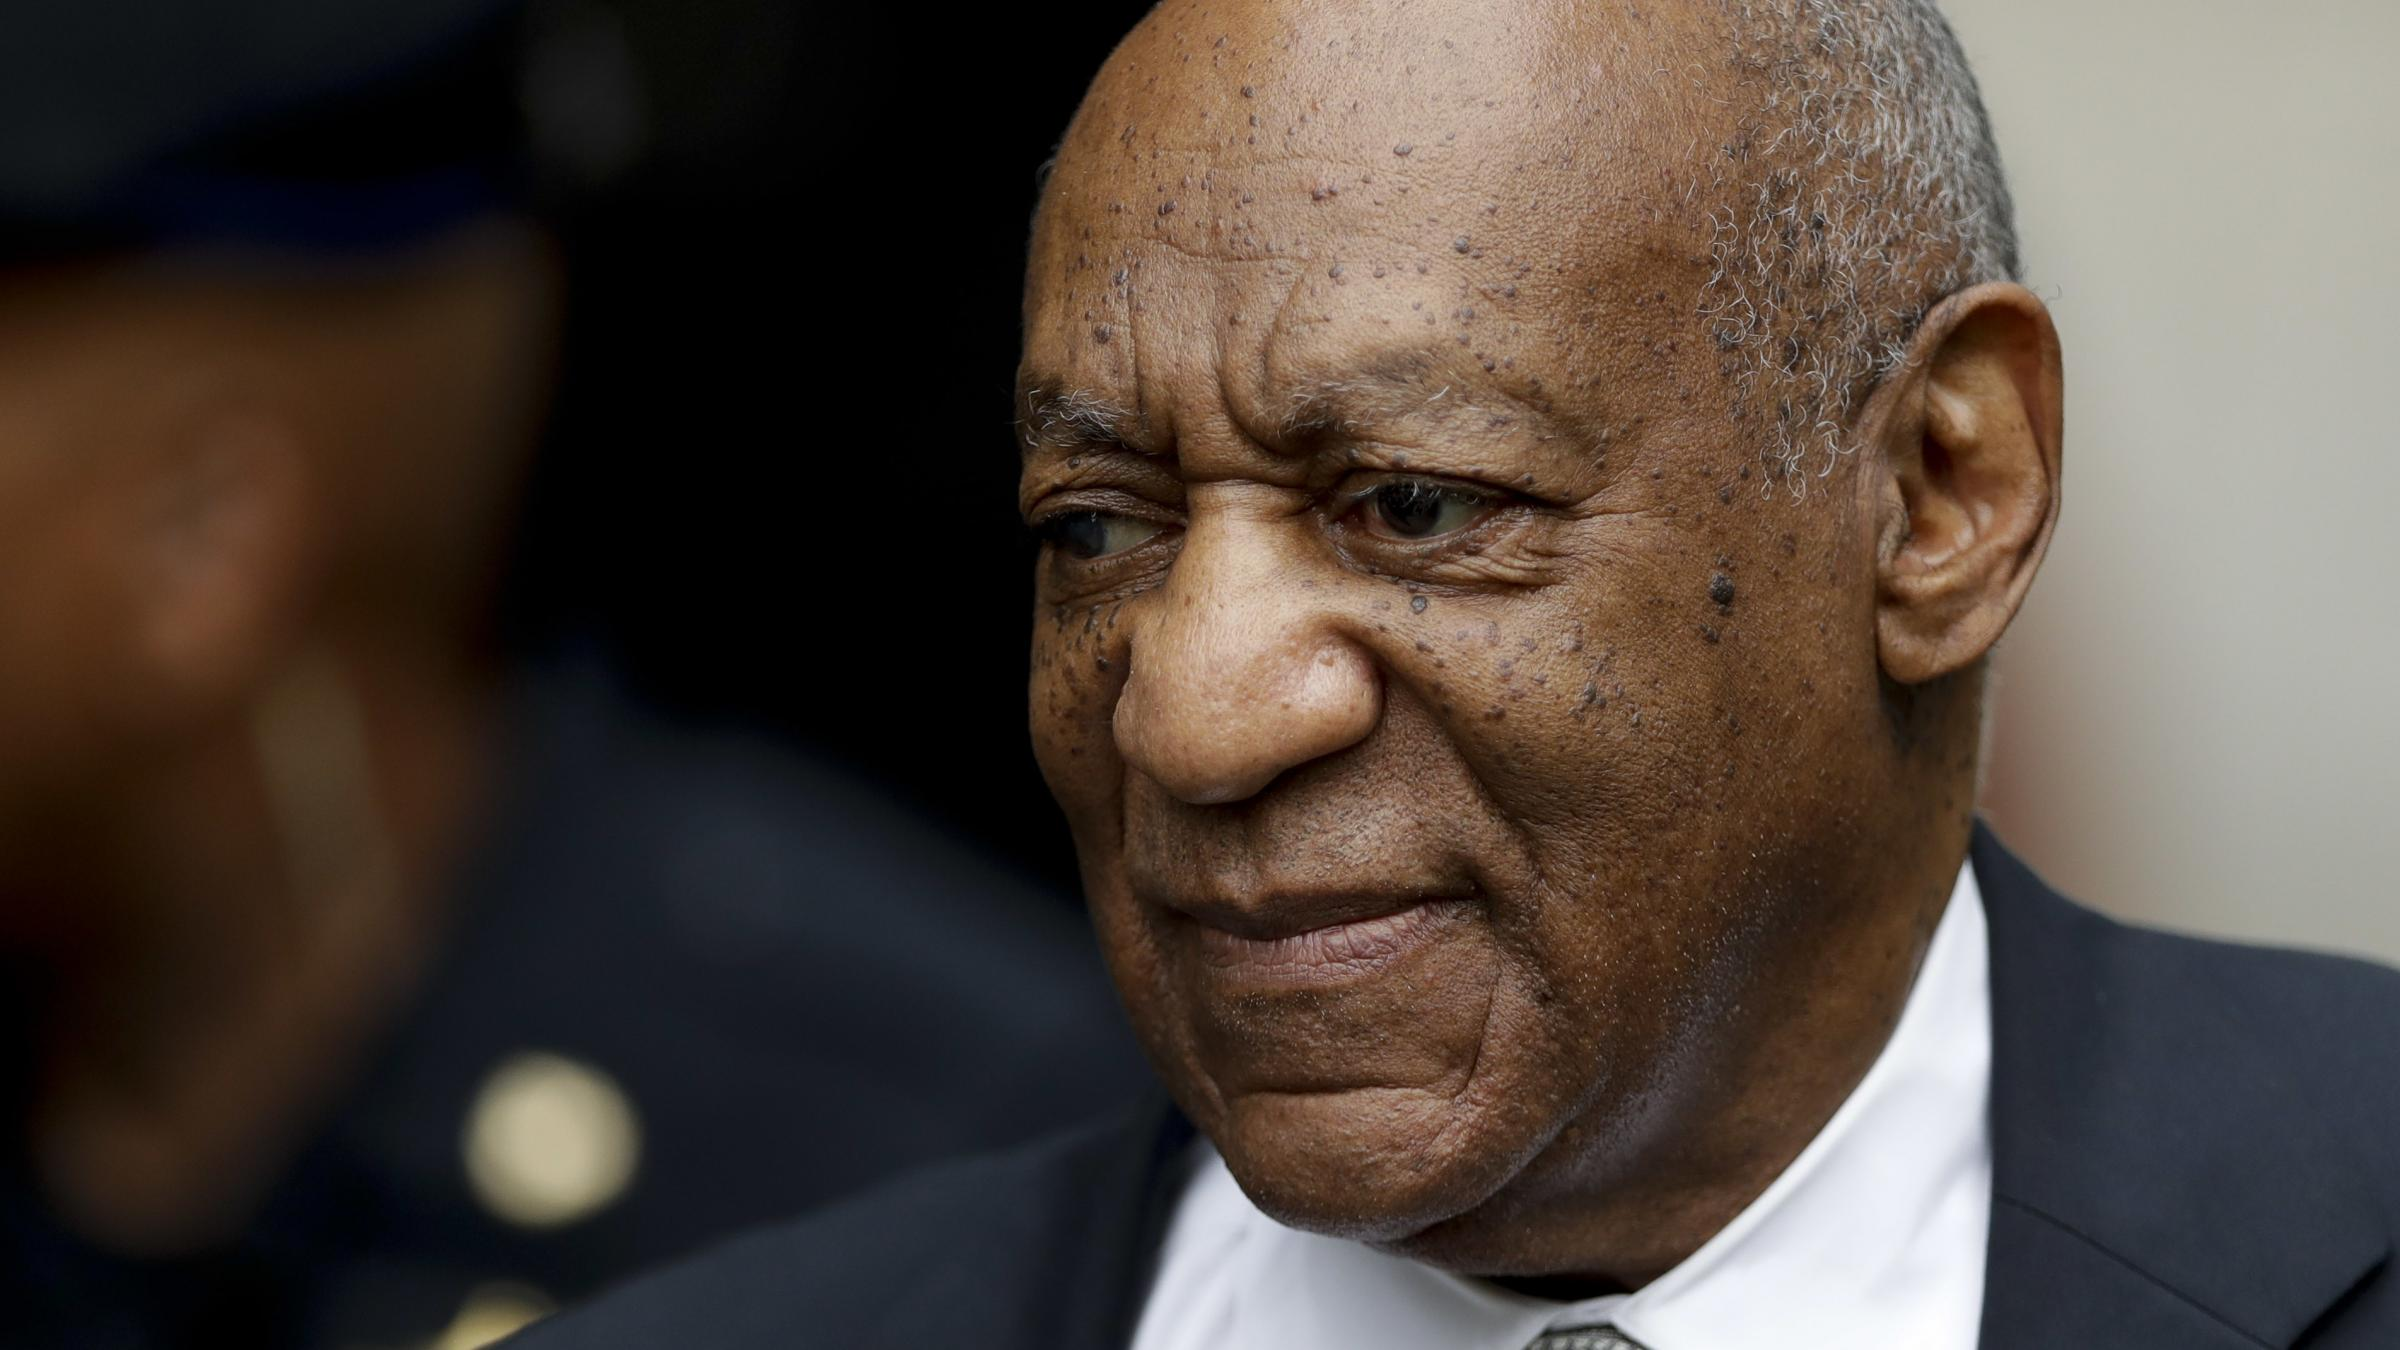 Mistrial in Bill Cosby sexual assault case